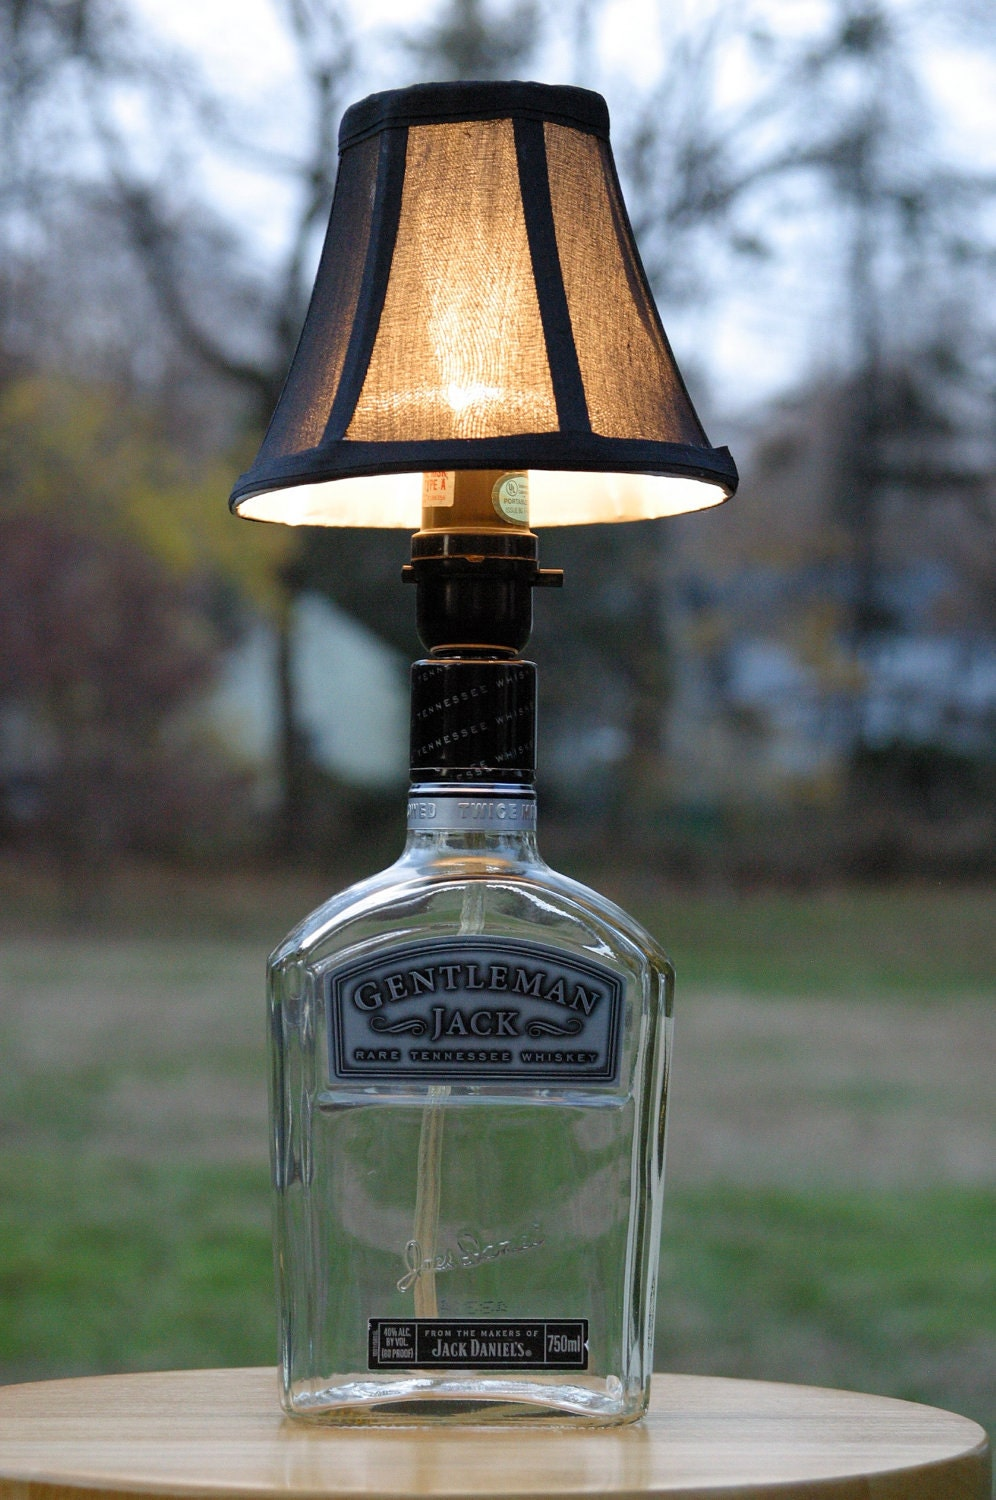 gentleman jack whiskey bottle lamp